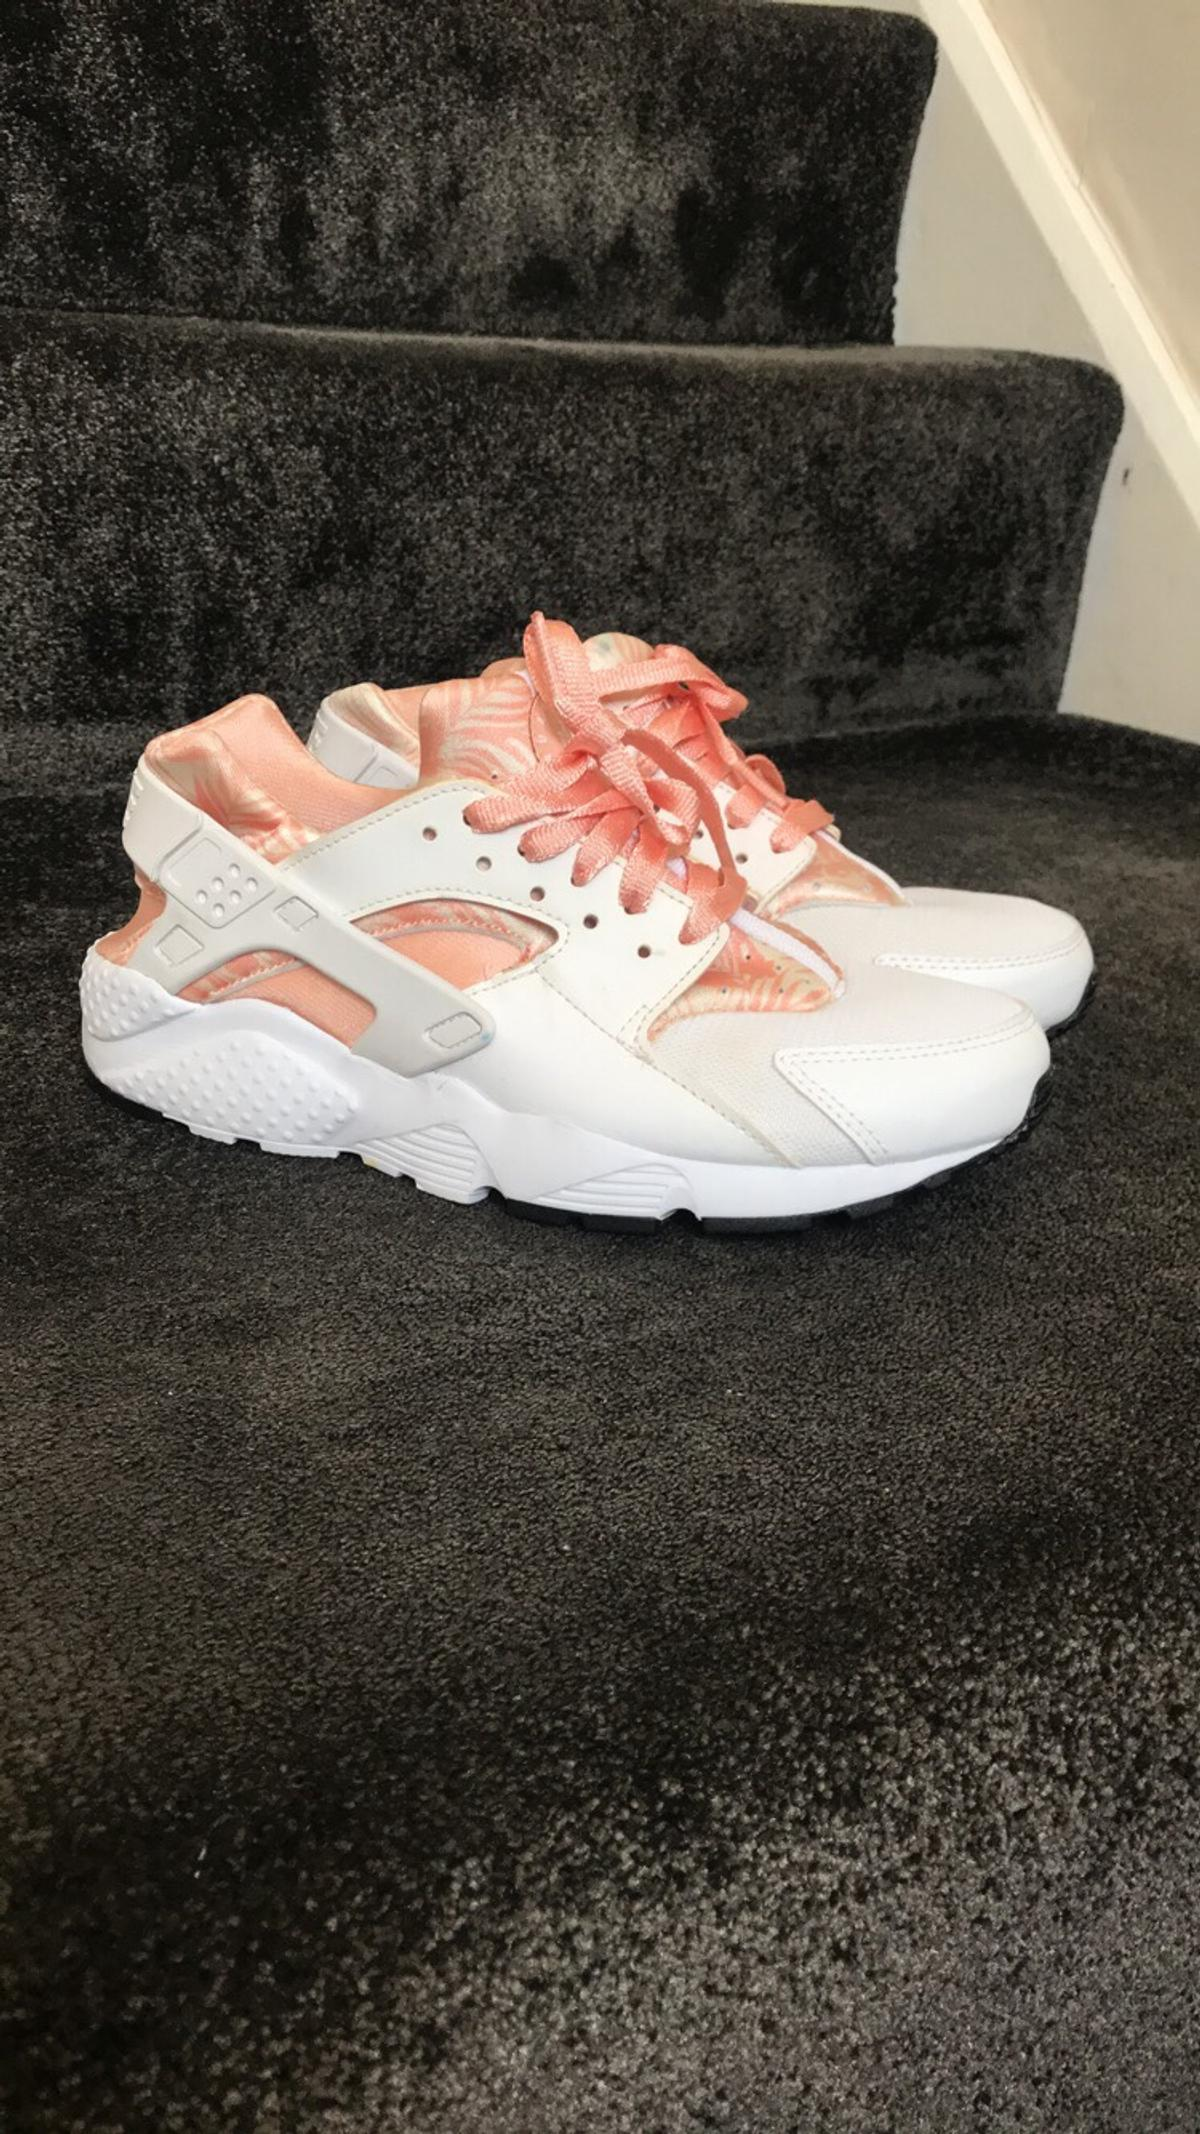 separation shoes 997d1 04cf8 White & Pink Nike Huaraches